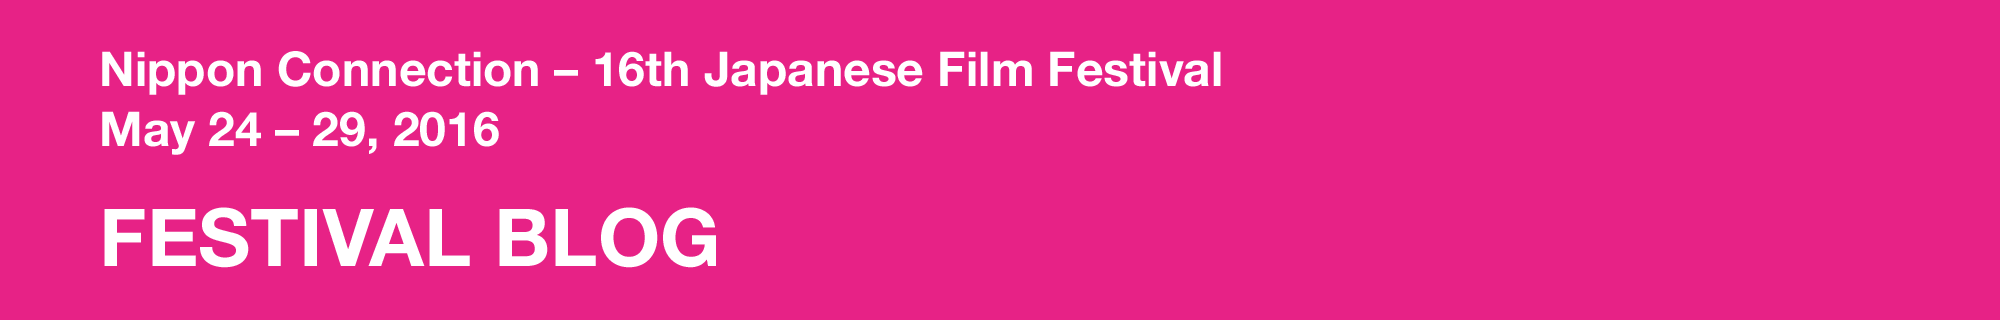 NIPPON CONNECTION – 16th Japanese Film Festival May 24 to 29, 2016